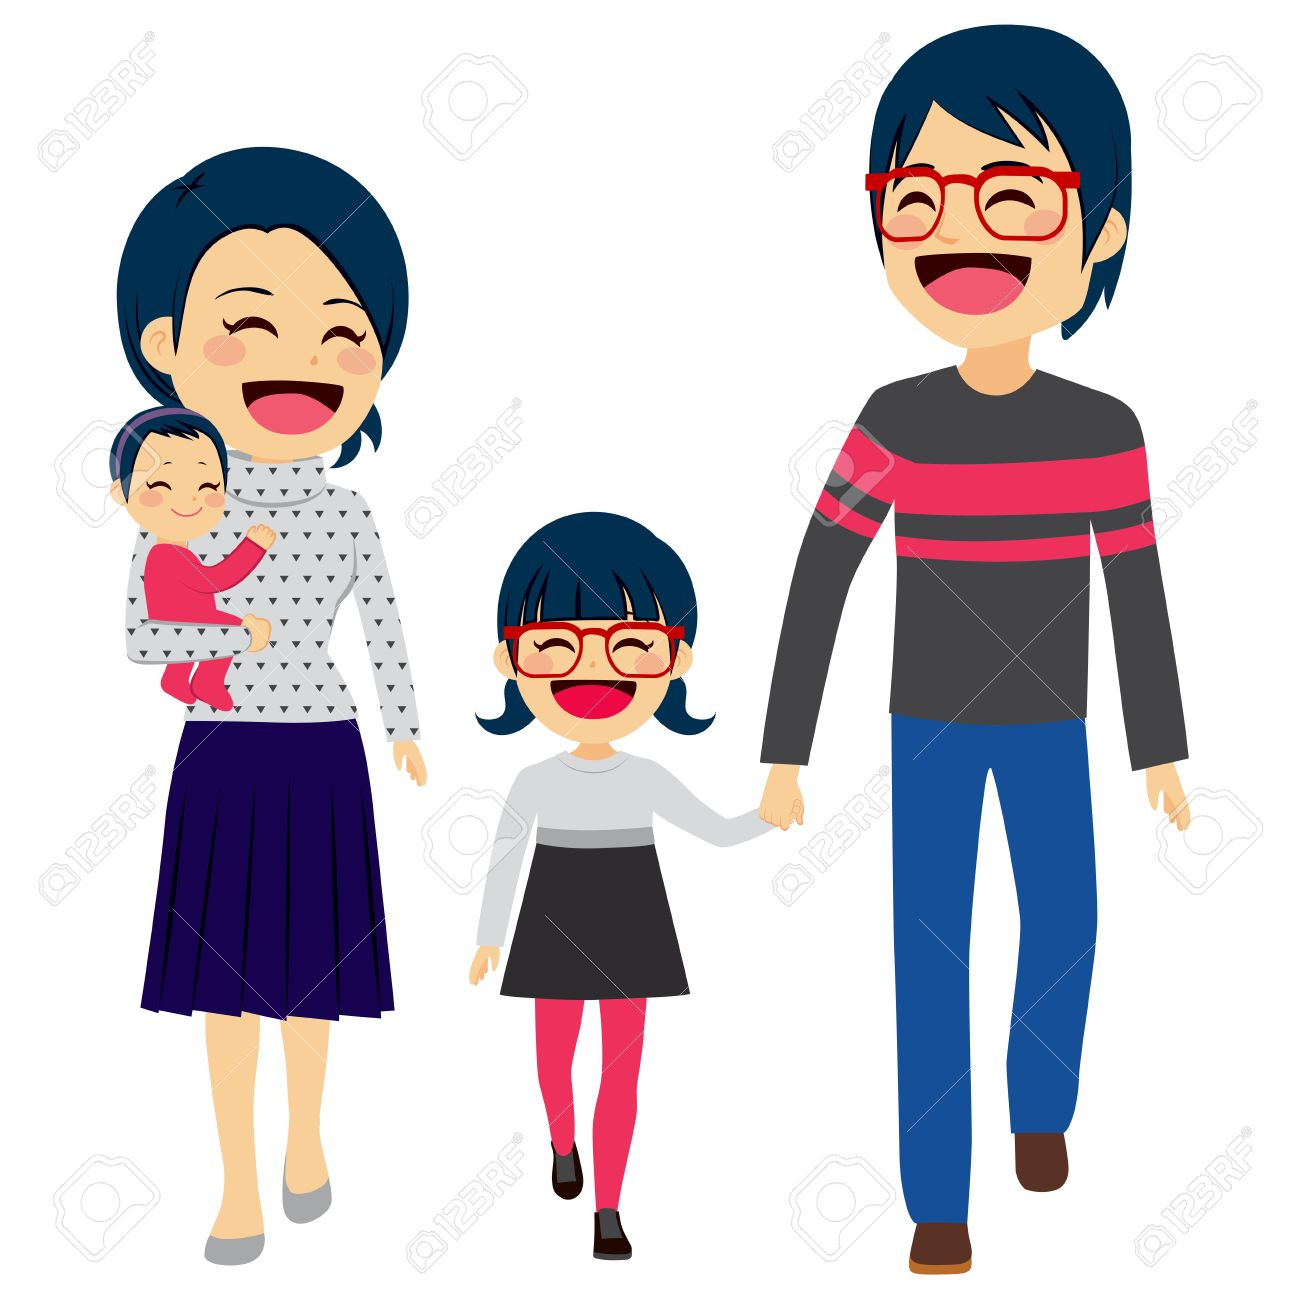 Cute happy four member Asian family walking together smiling.